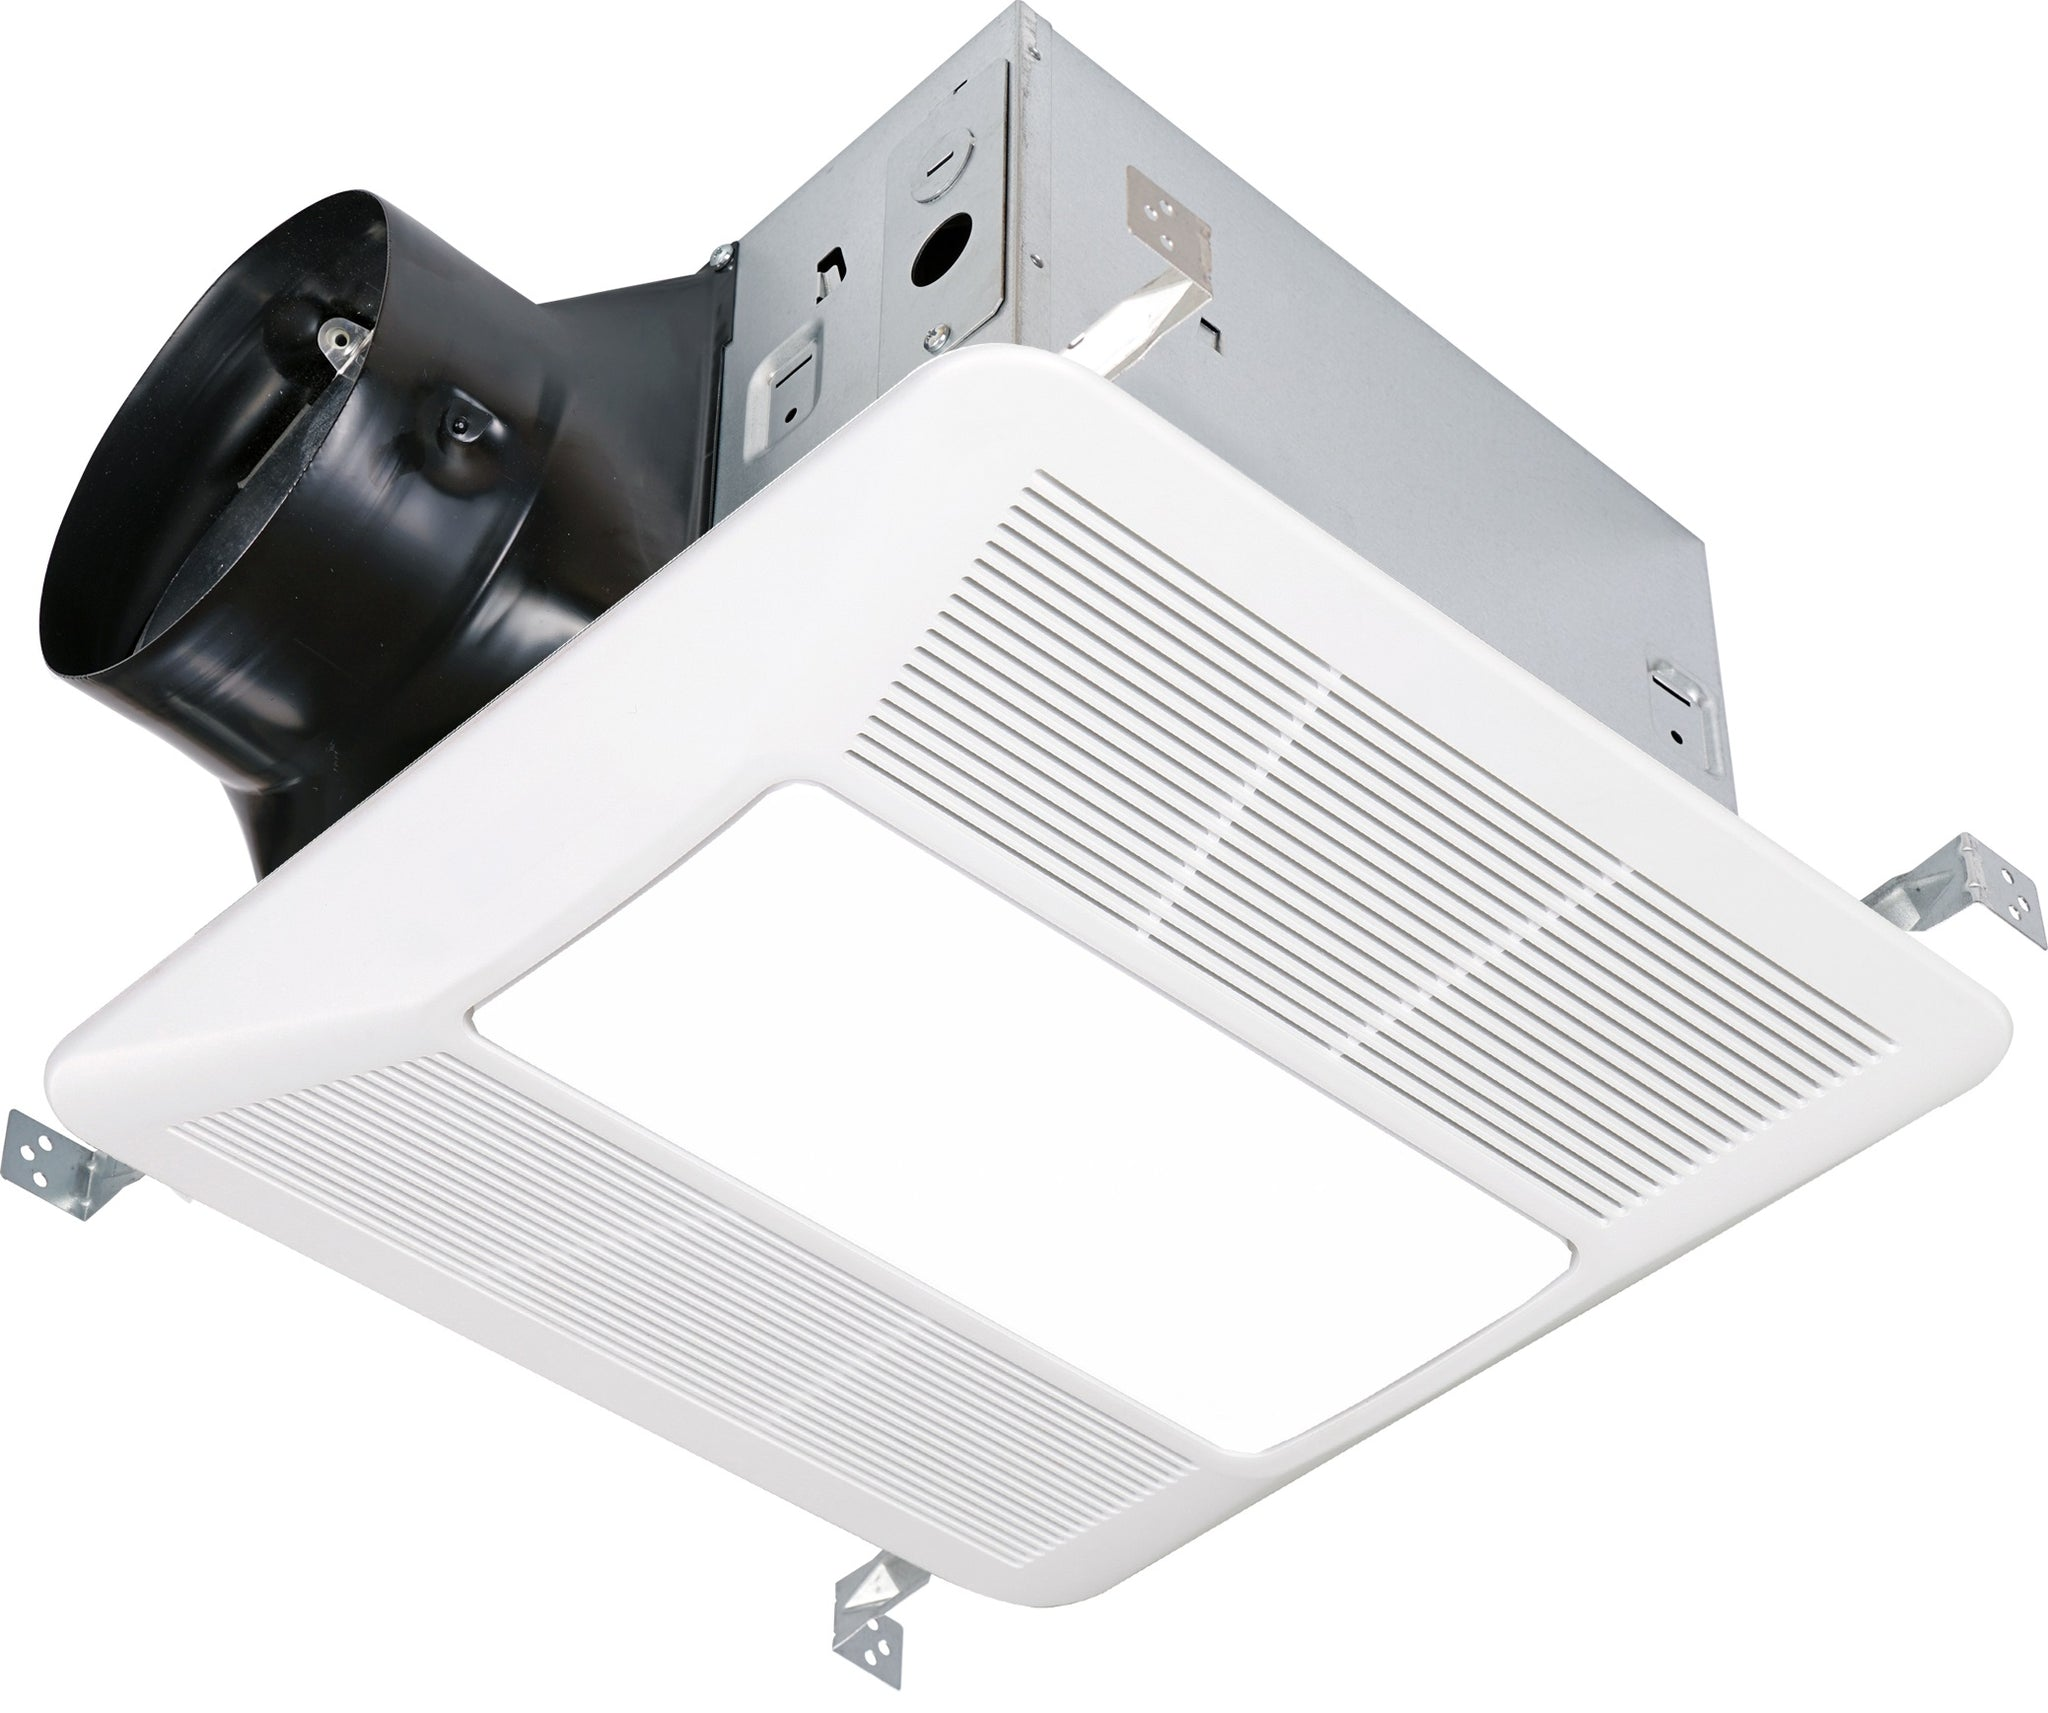 120 CFM / 0.3 Sone / LED Light & Night Light